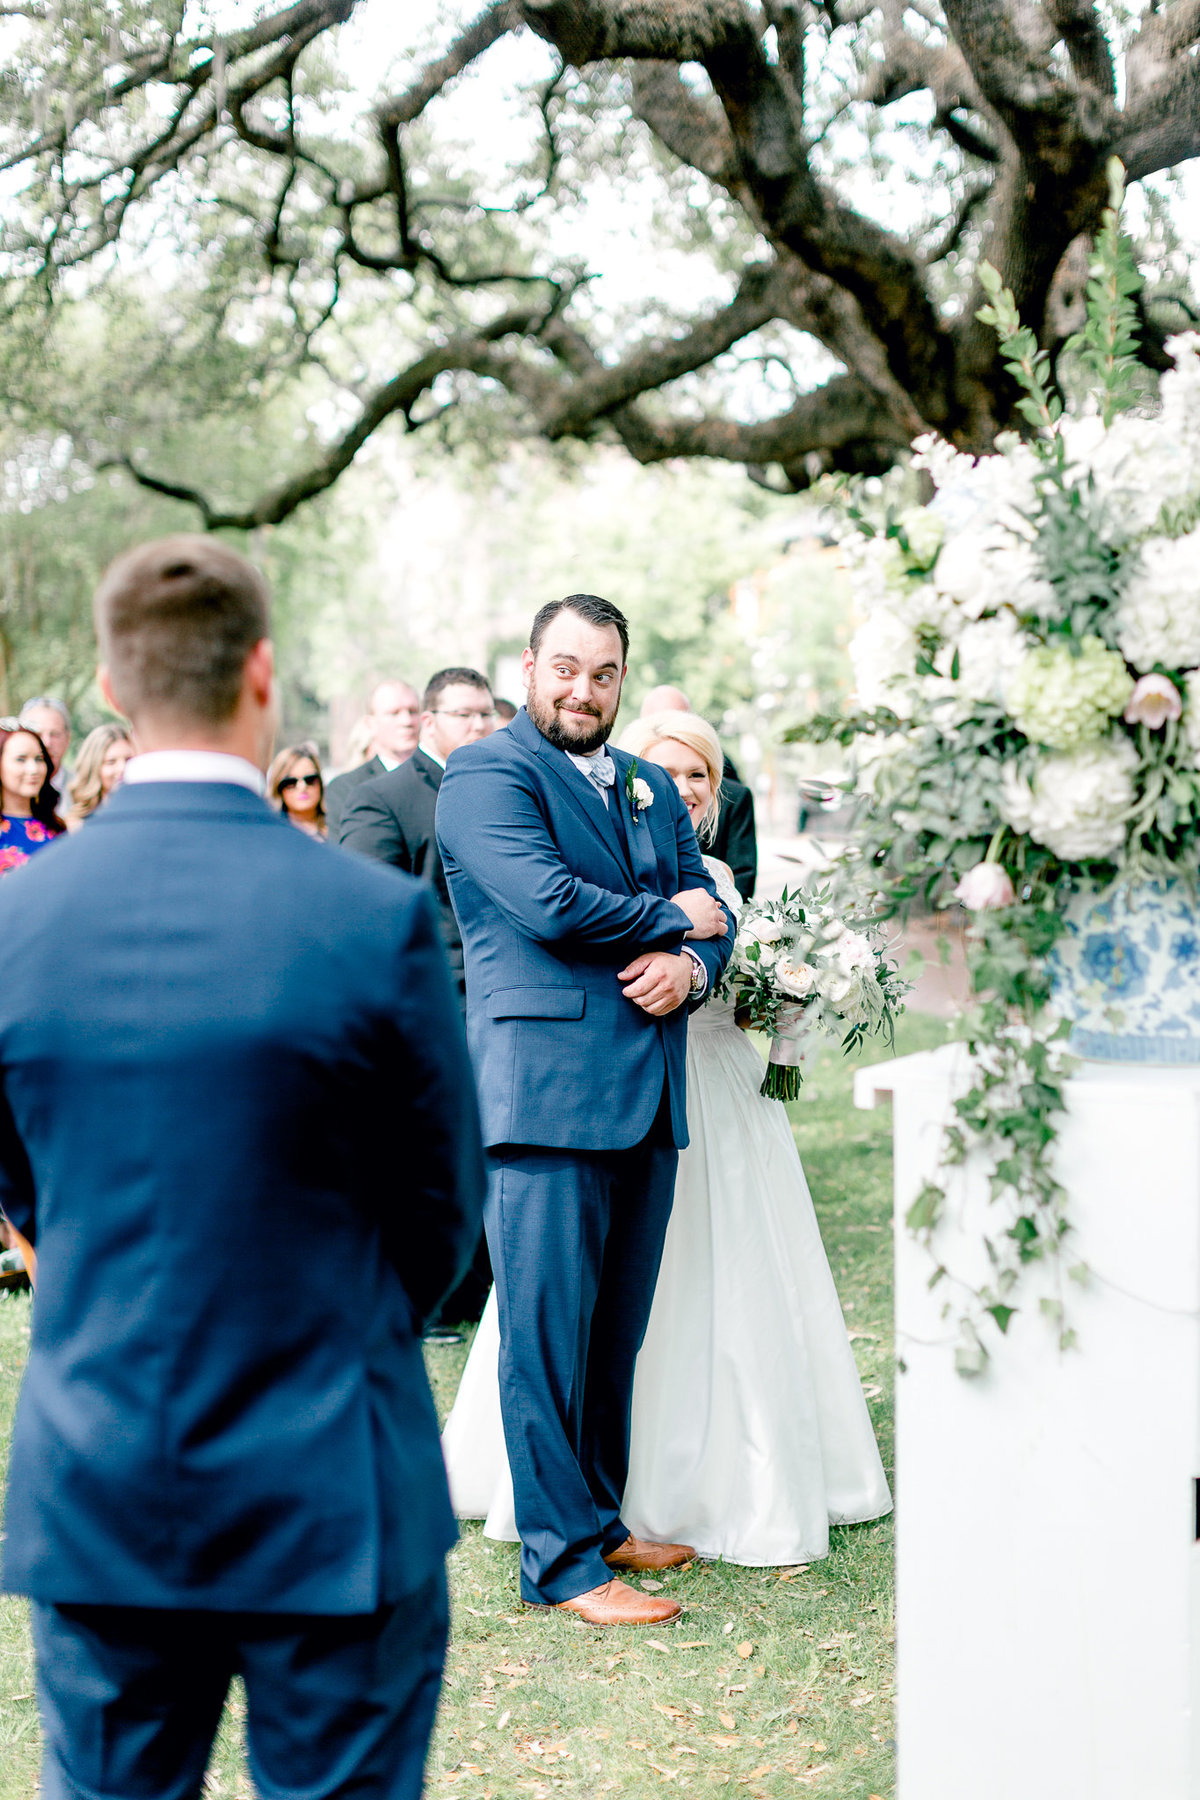 Savannah-Georgia-Wedding-Photographer-Holly-Felts-Photography-Wilmon-Wedding-239